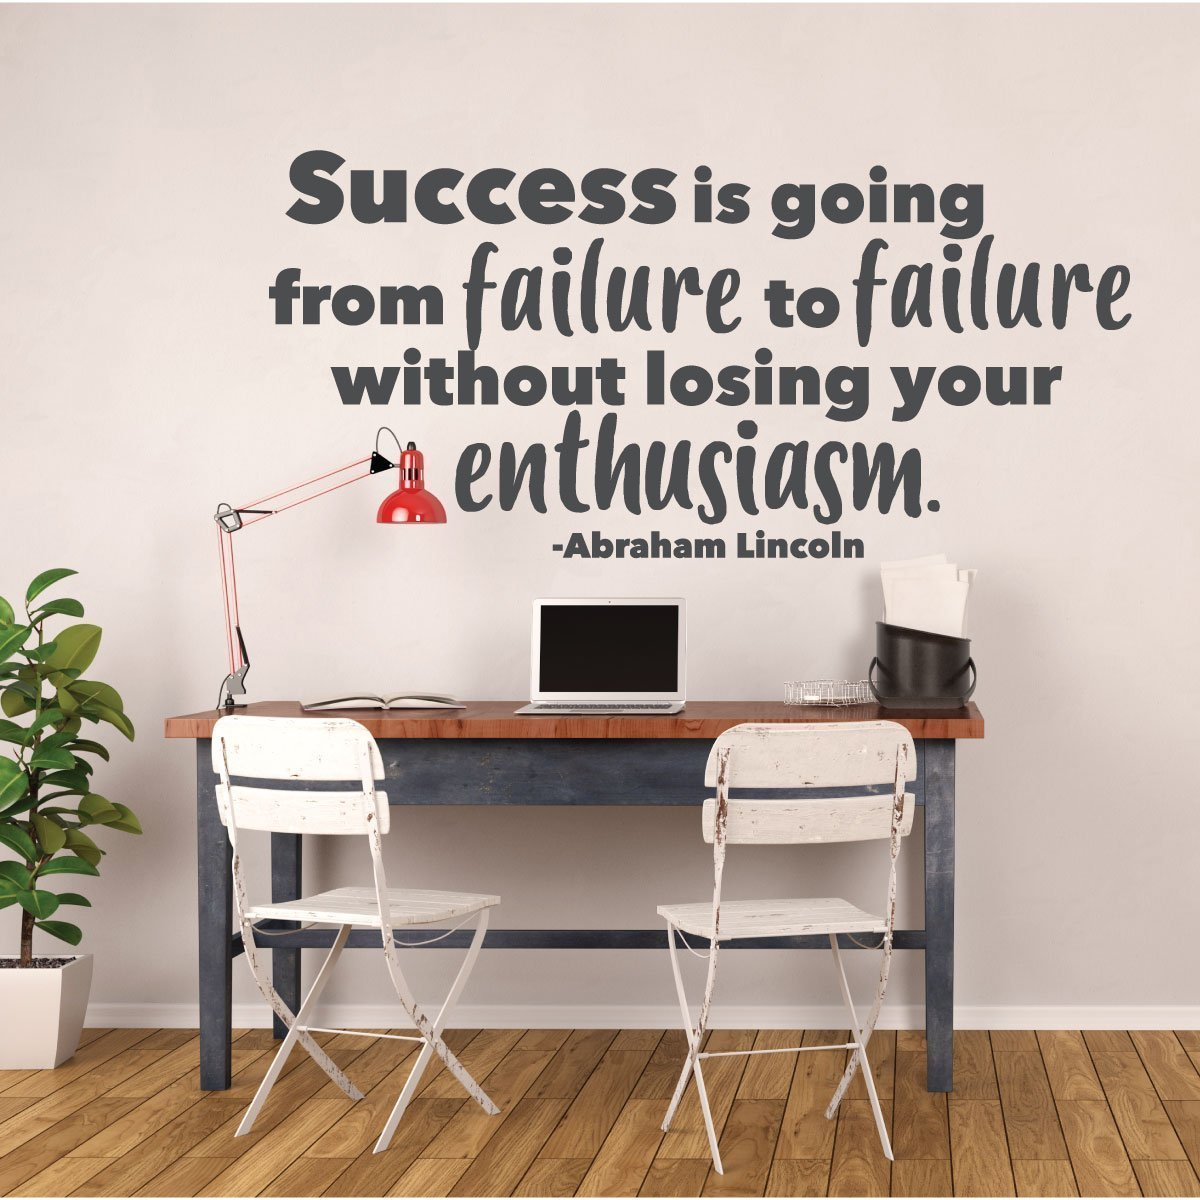 Success Quotes for Motivation - Abraham Lincoln Success is Going From Failure Wall Sign Vinyl Decal Home, School, Office Decoration Inspirational